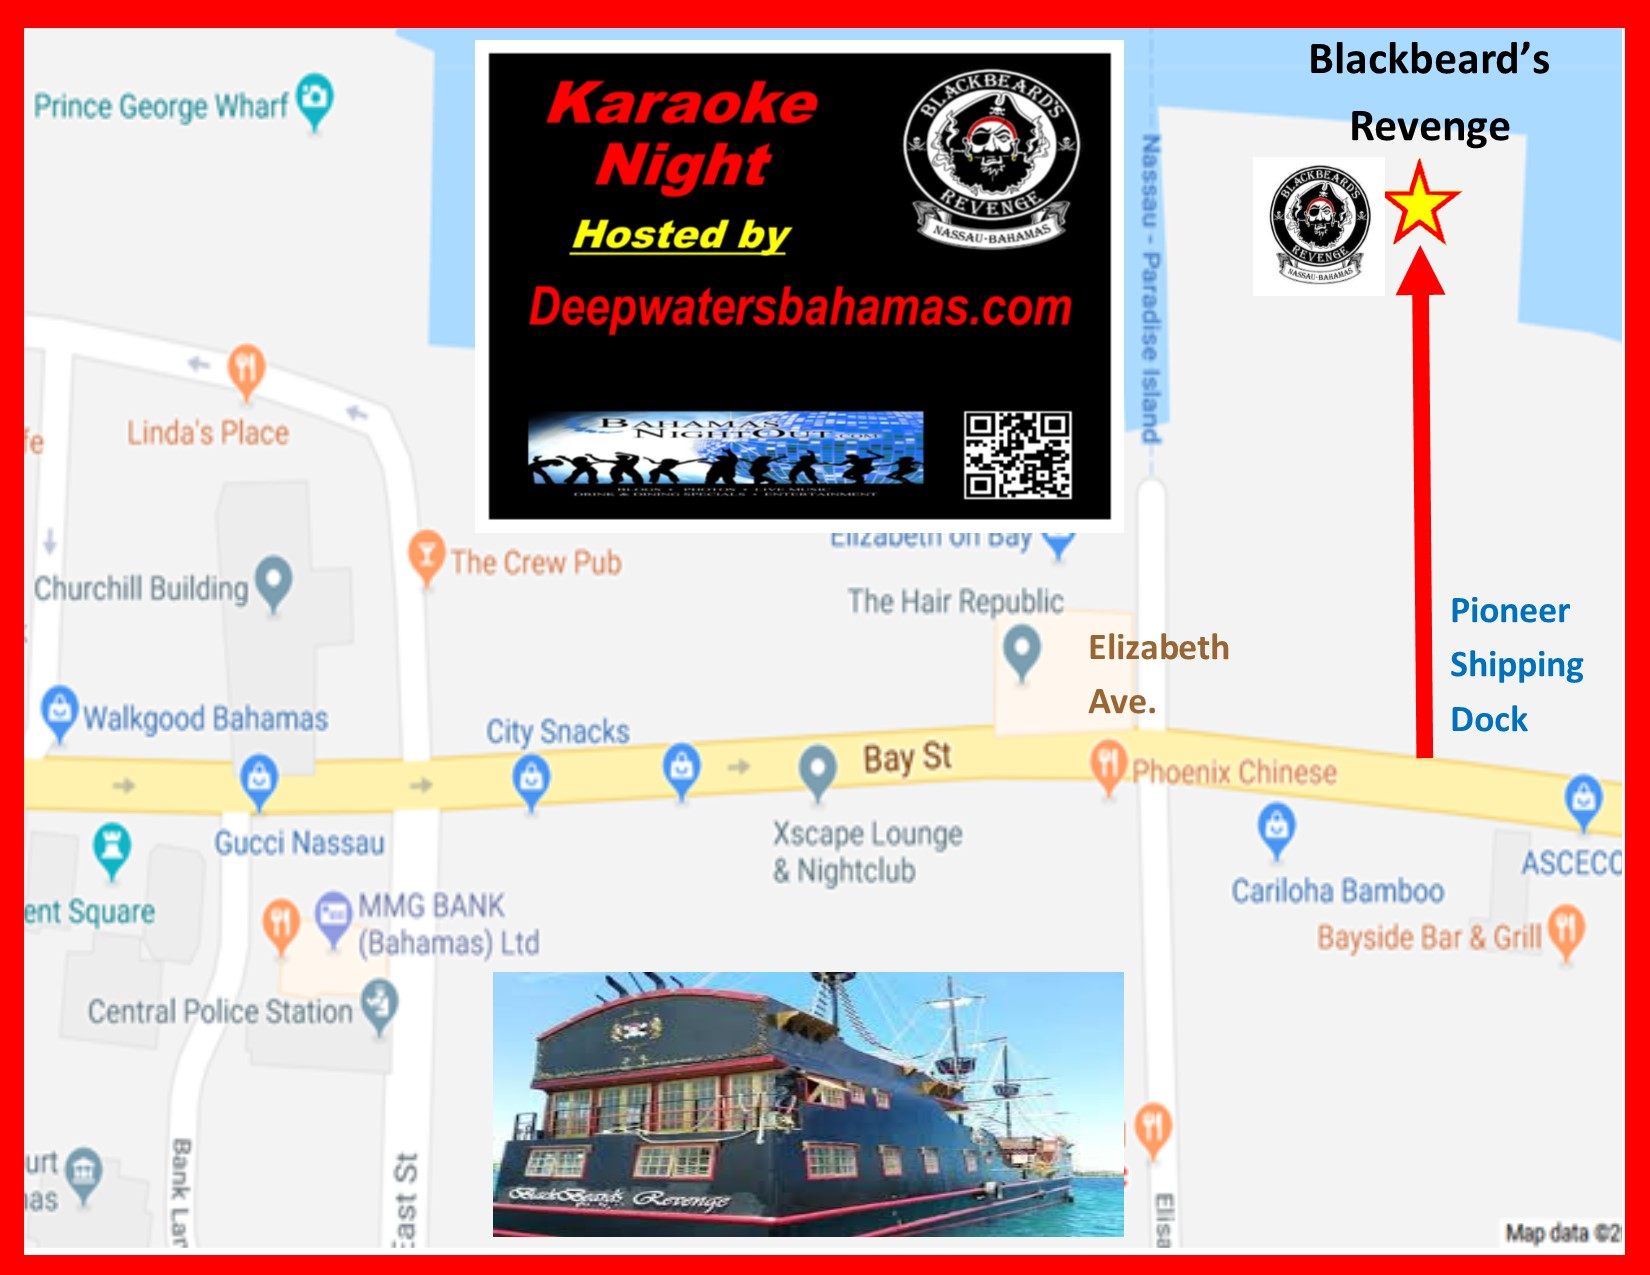 Karaoke Happy Hour FRIDAY at Blackbeard's Revenge